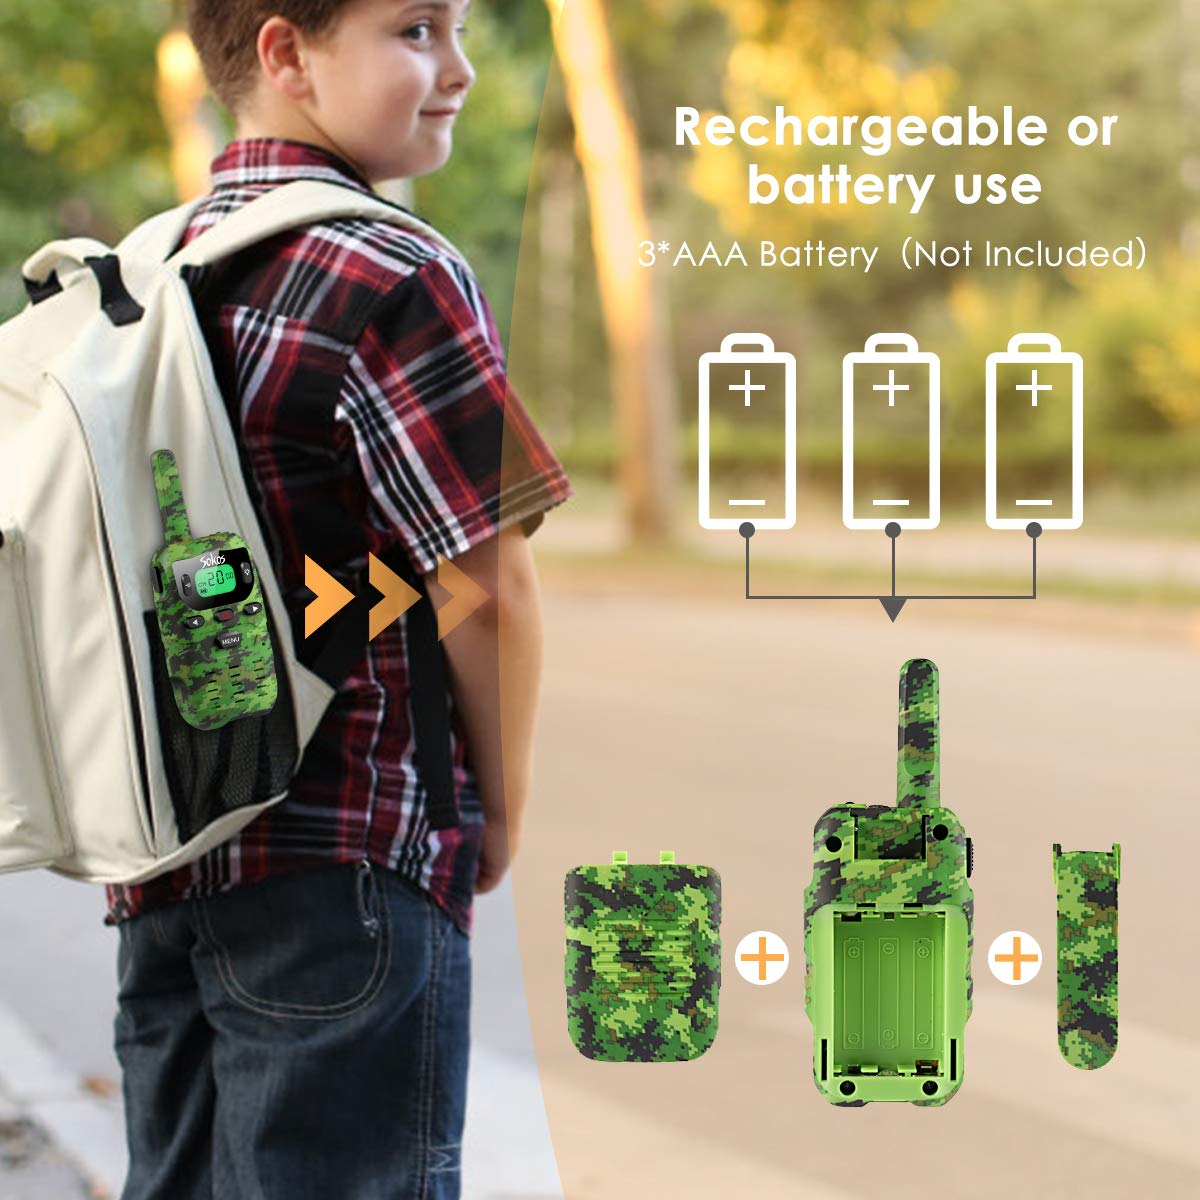 UOKOO Walkie Talkies for Kids, Toys for 3-12 Year Old Boys 22 Channel 3 Mile Long Range Kids Toys and Kids Walkie Talkies, and Top Toys for for 3 4 5 6 7 8 9 Year Old Boy and Girls by UOKOO (Image #7)